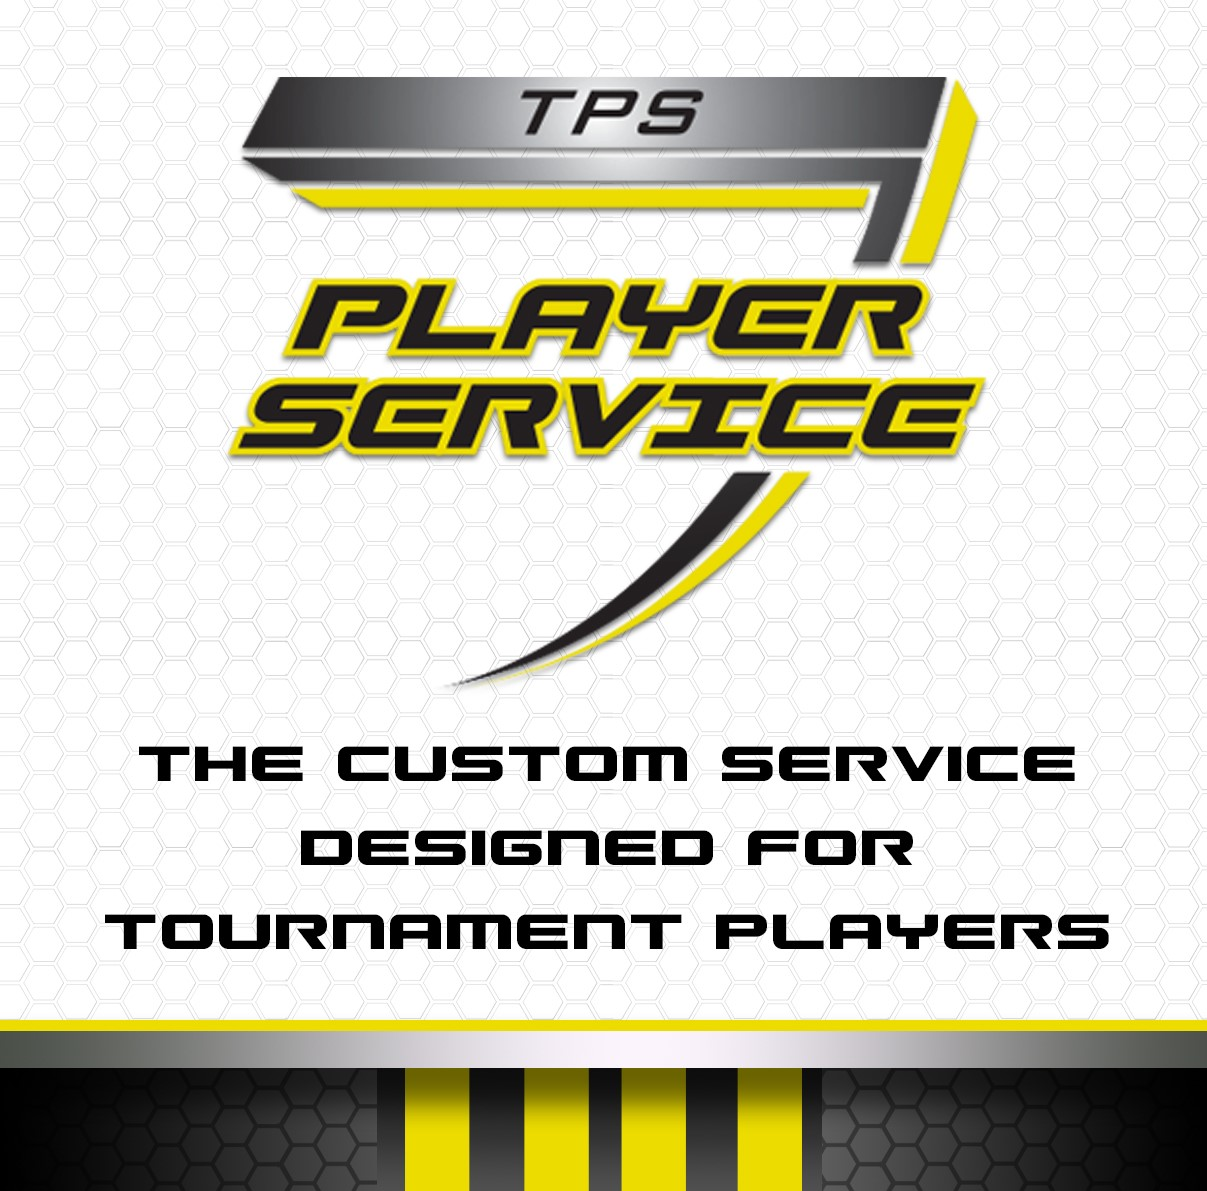 The Player Service